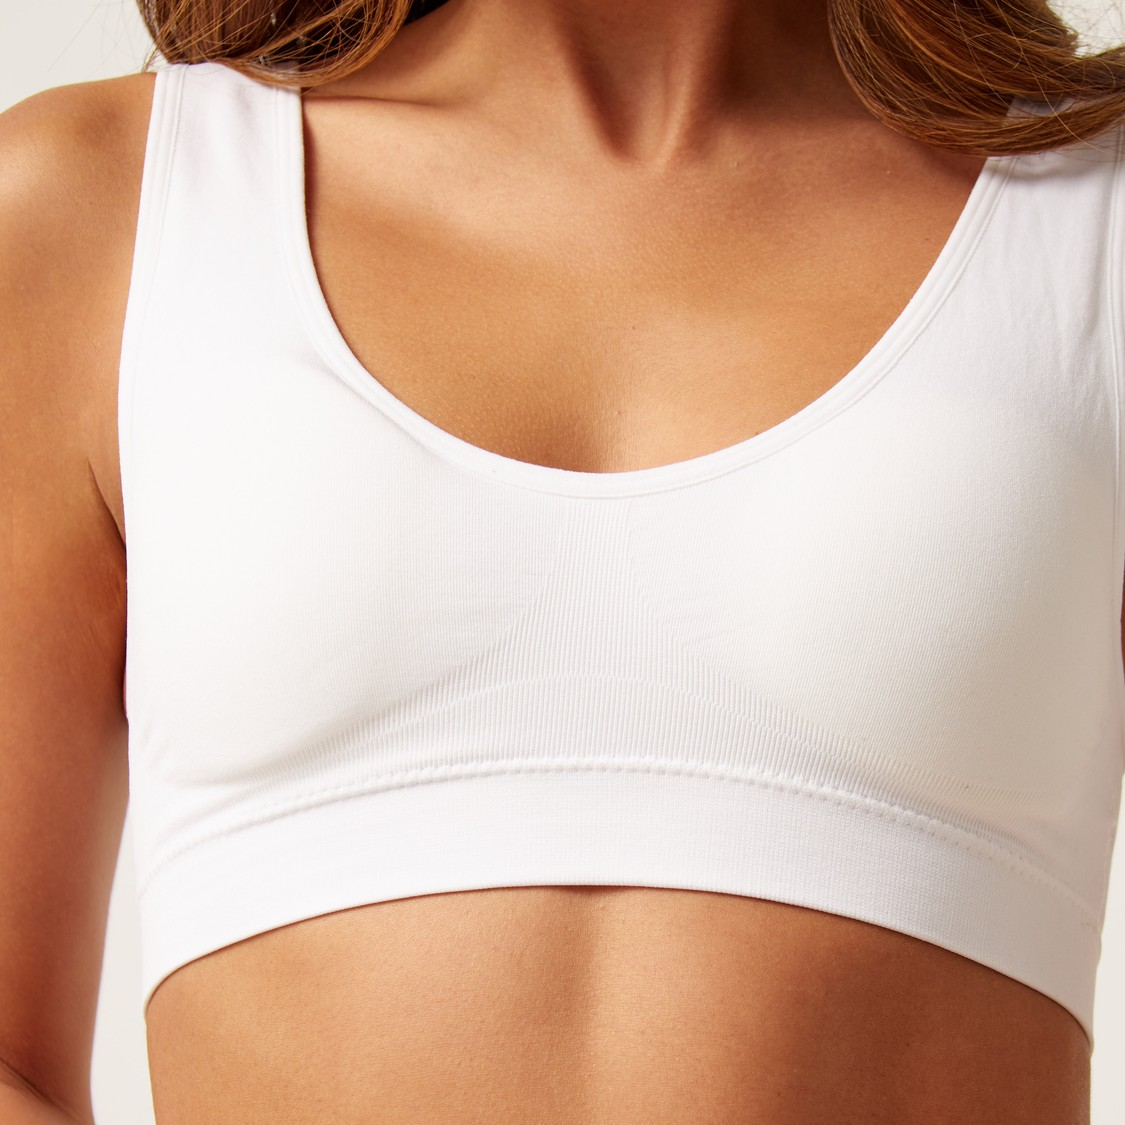 Padded Seamless Non-Wired Shaping Bra